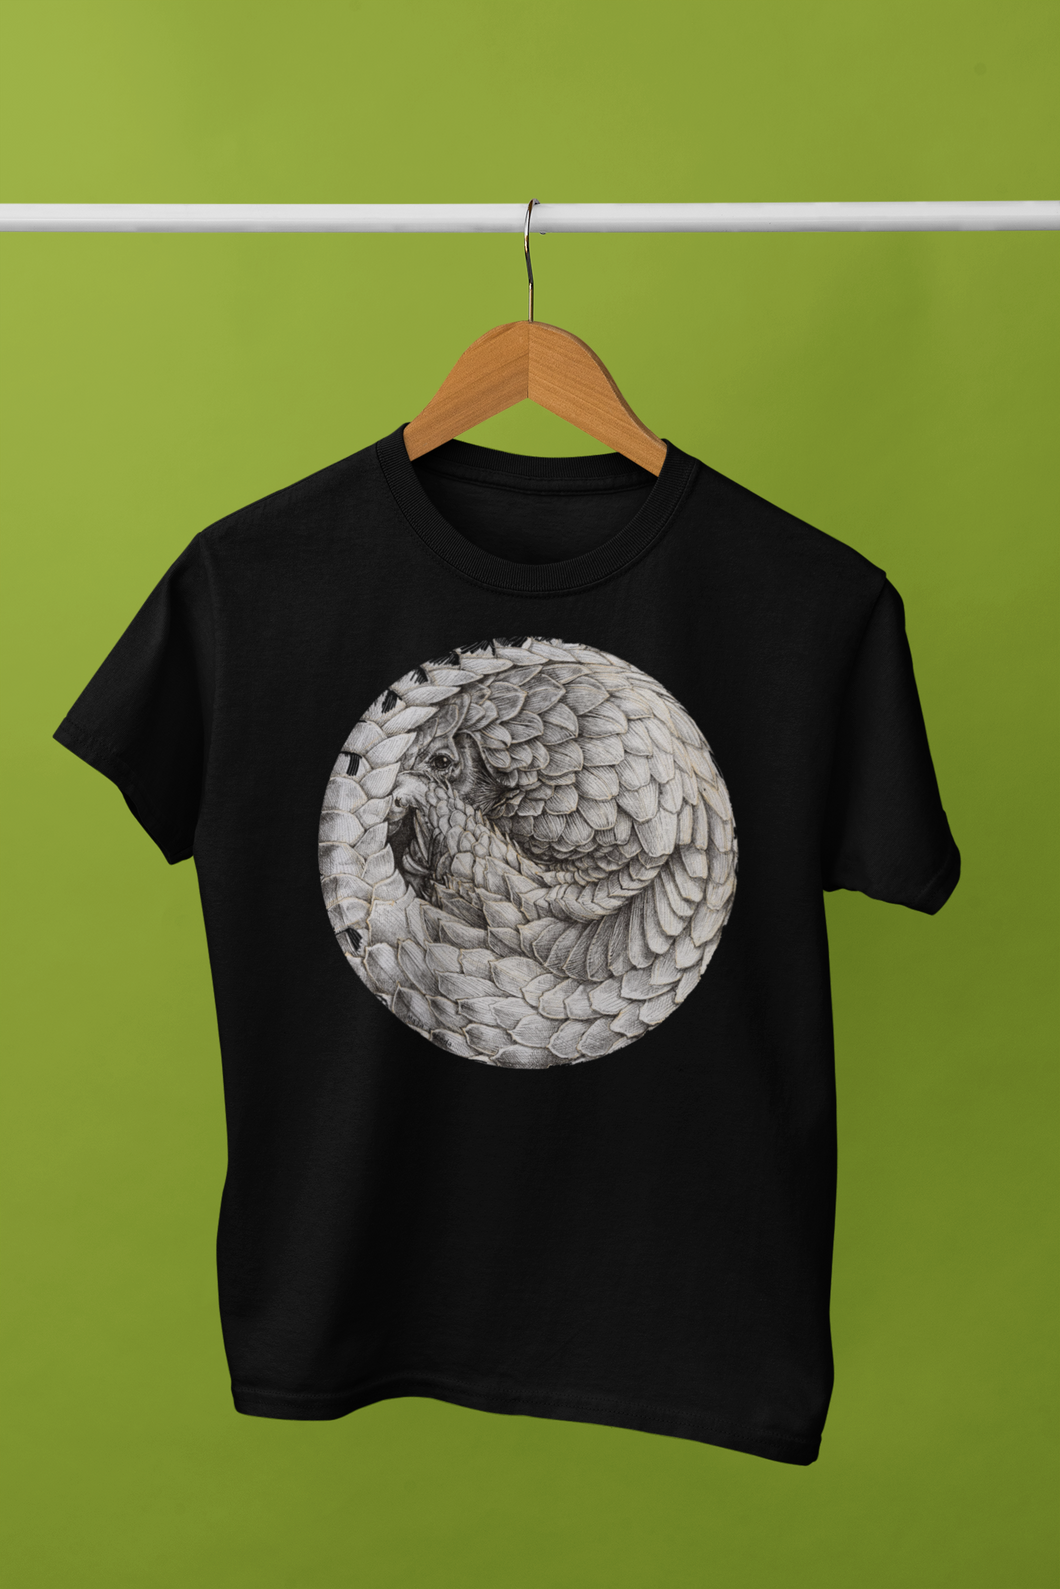 Pangolin Style Men's/Unisex or Women's T-shirt